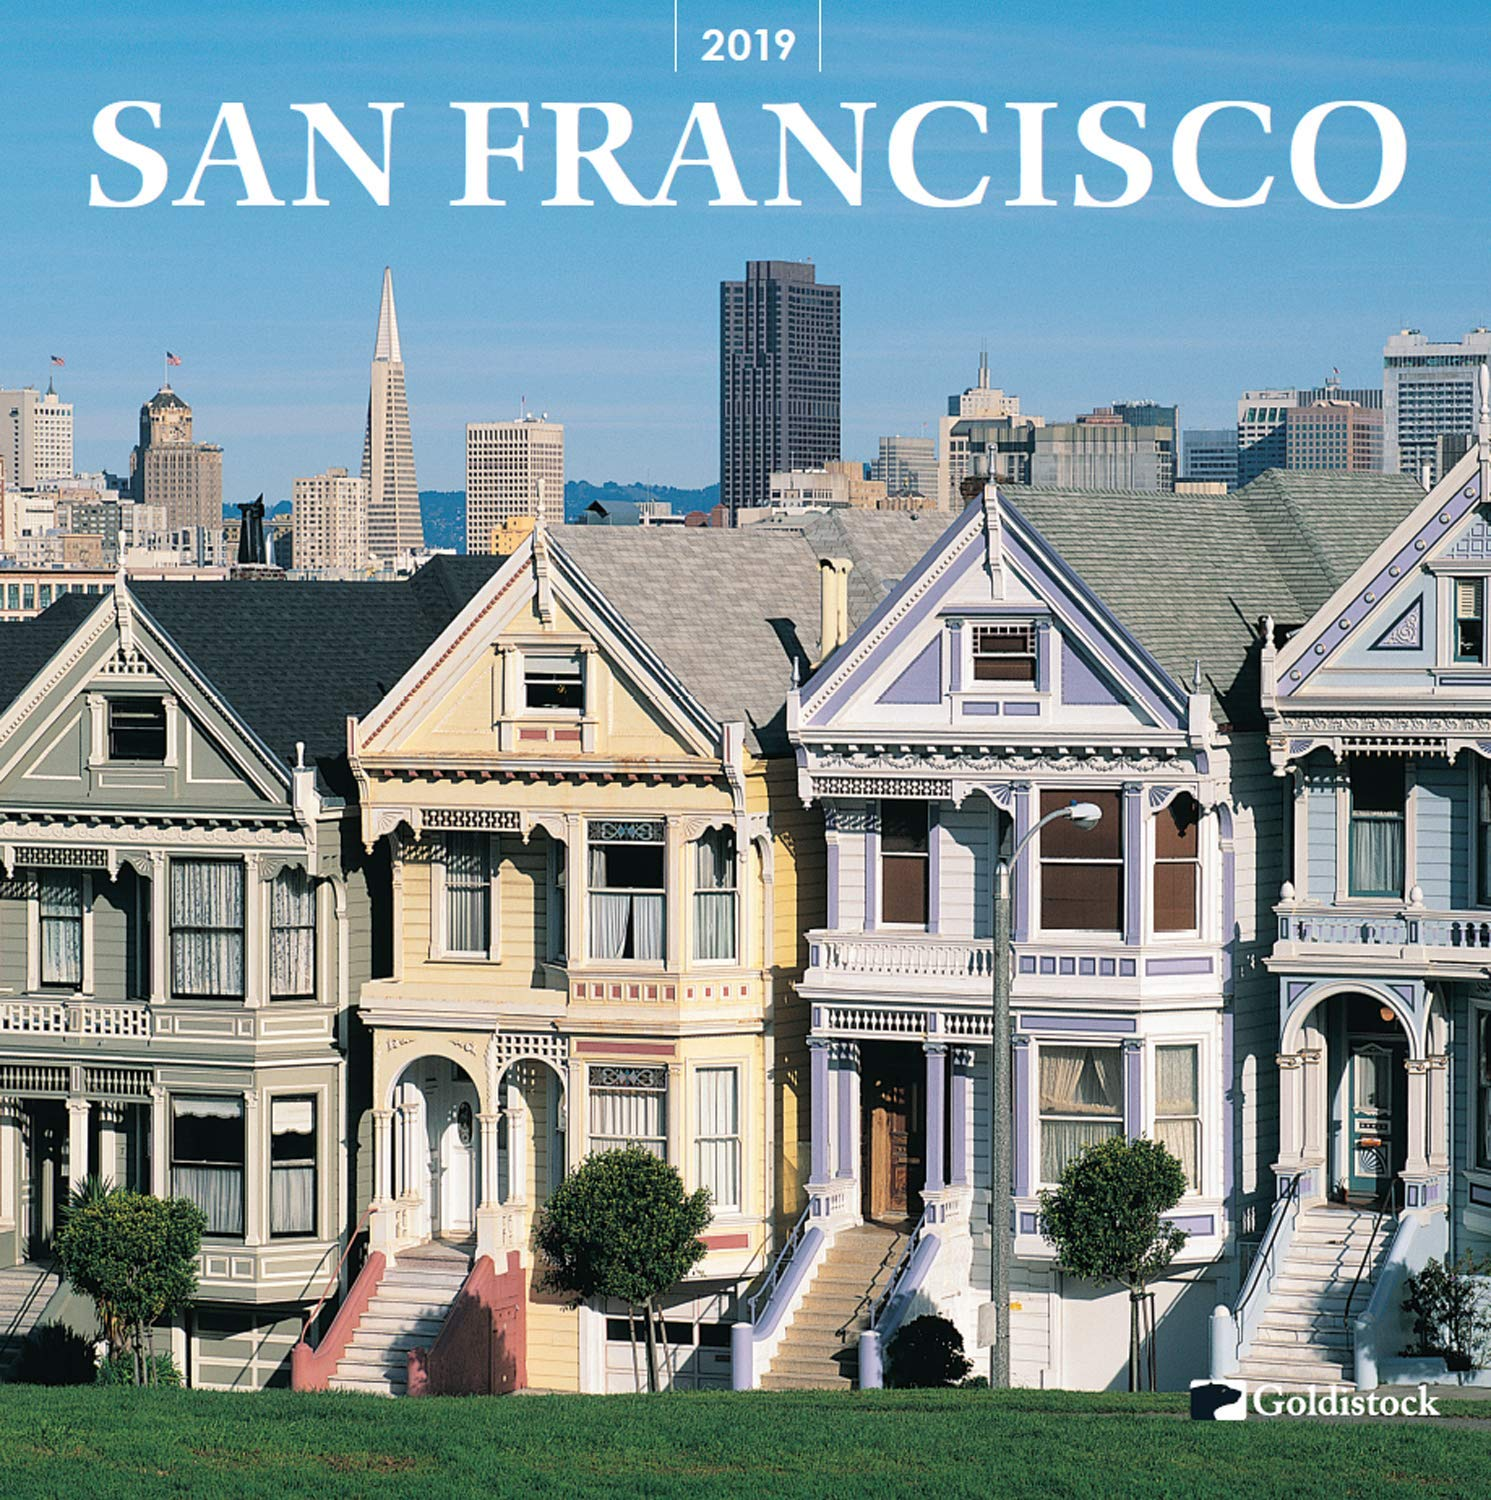 Goldistock -''San Francisco'' Eco-Friendly 2019 Large Wall Calendar - 12'' x 24'' (Open) - Beautiful Scenes of The City by The Bay - Thick & Sturdy Paper